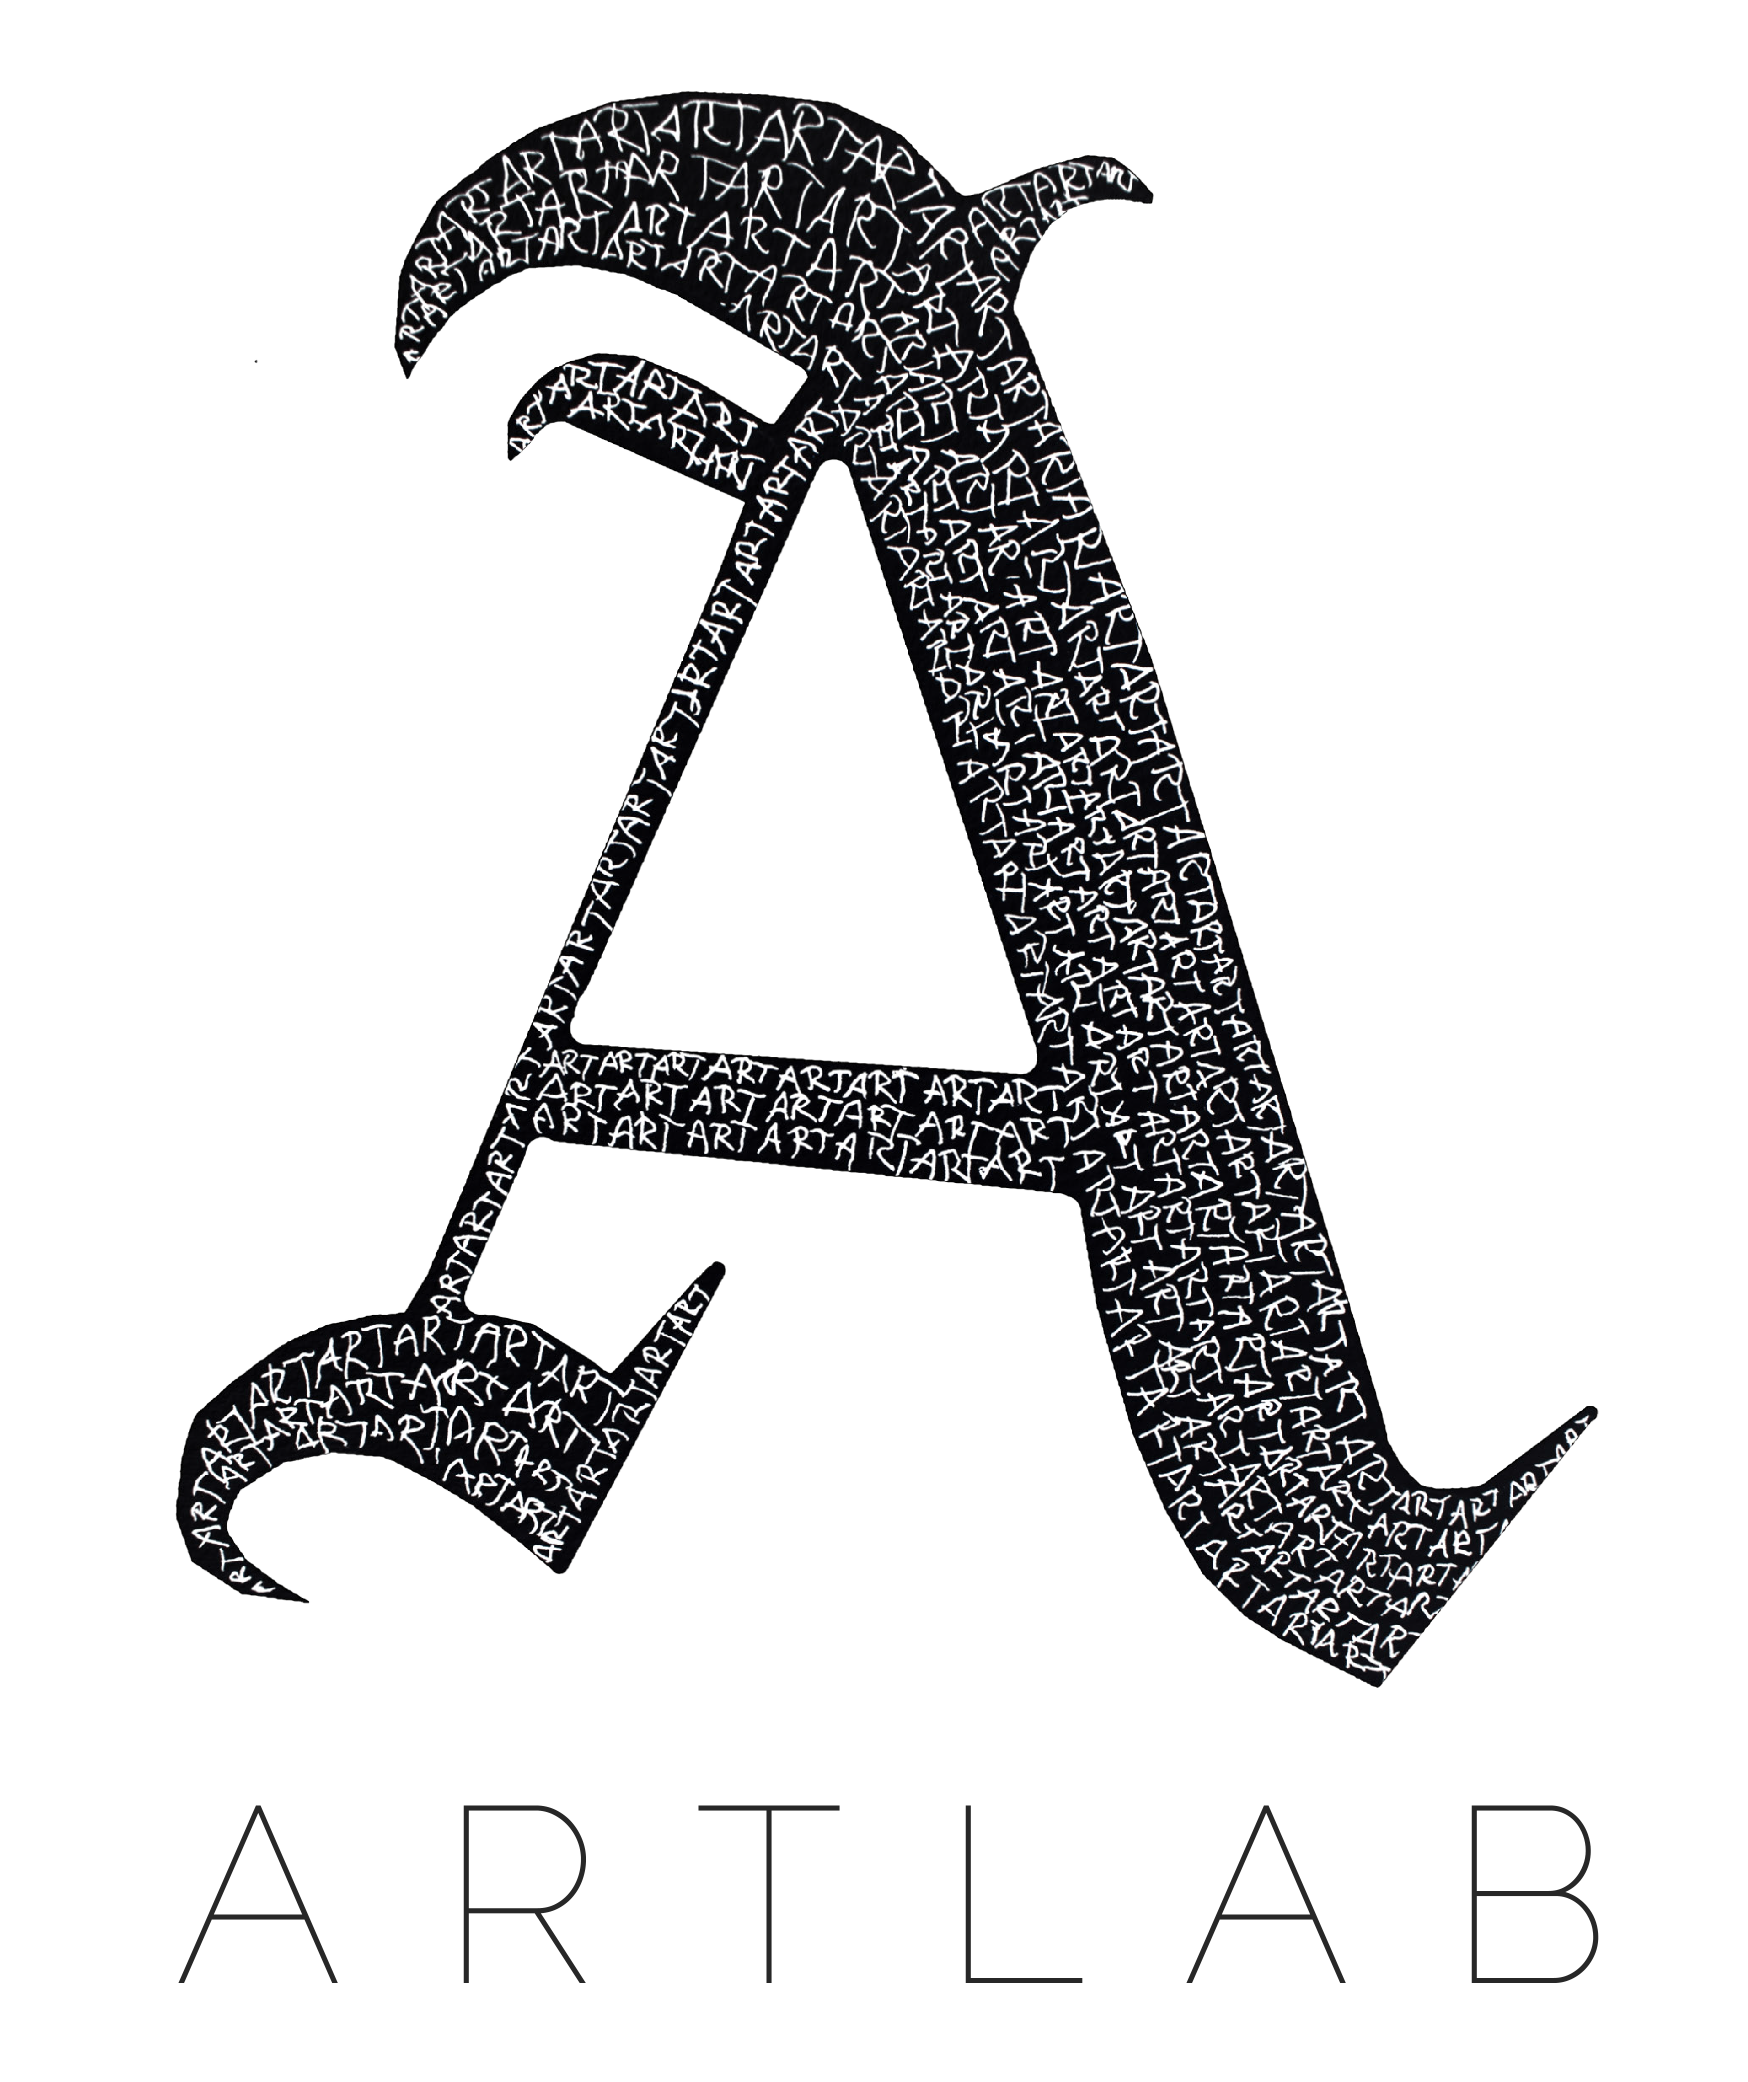 A_artlab_black